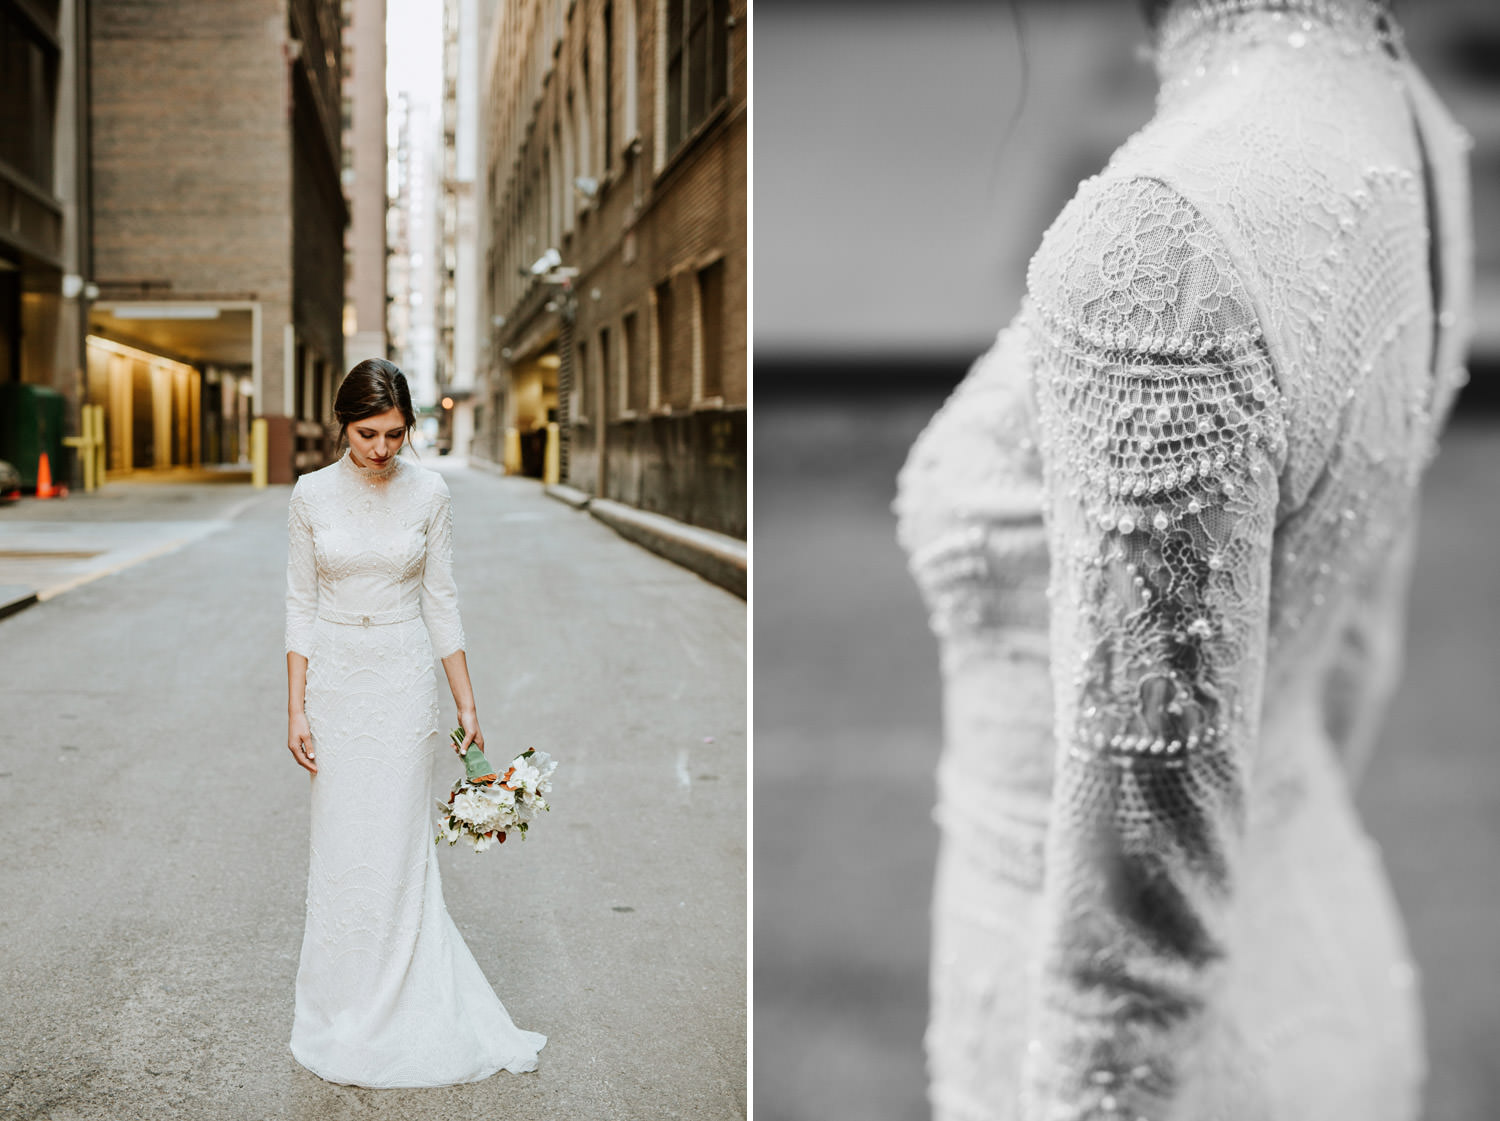 Portrait of the bride taken outside of the Gray Hotel in Chicago on the wedding day